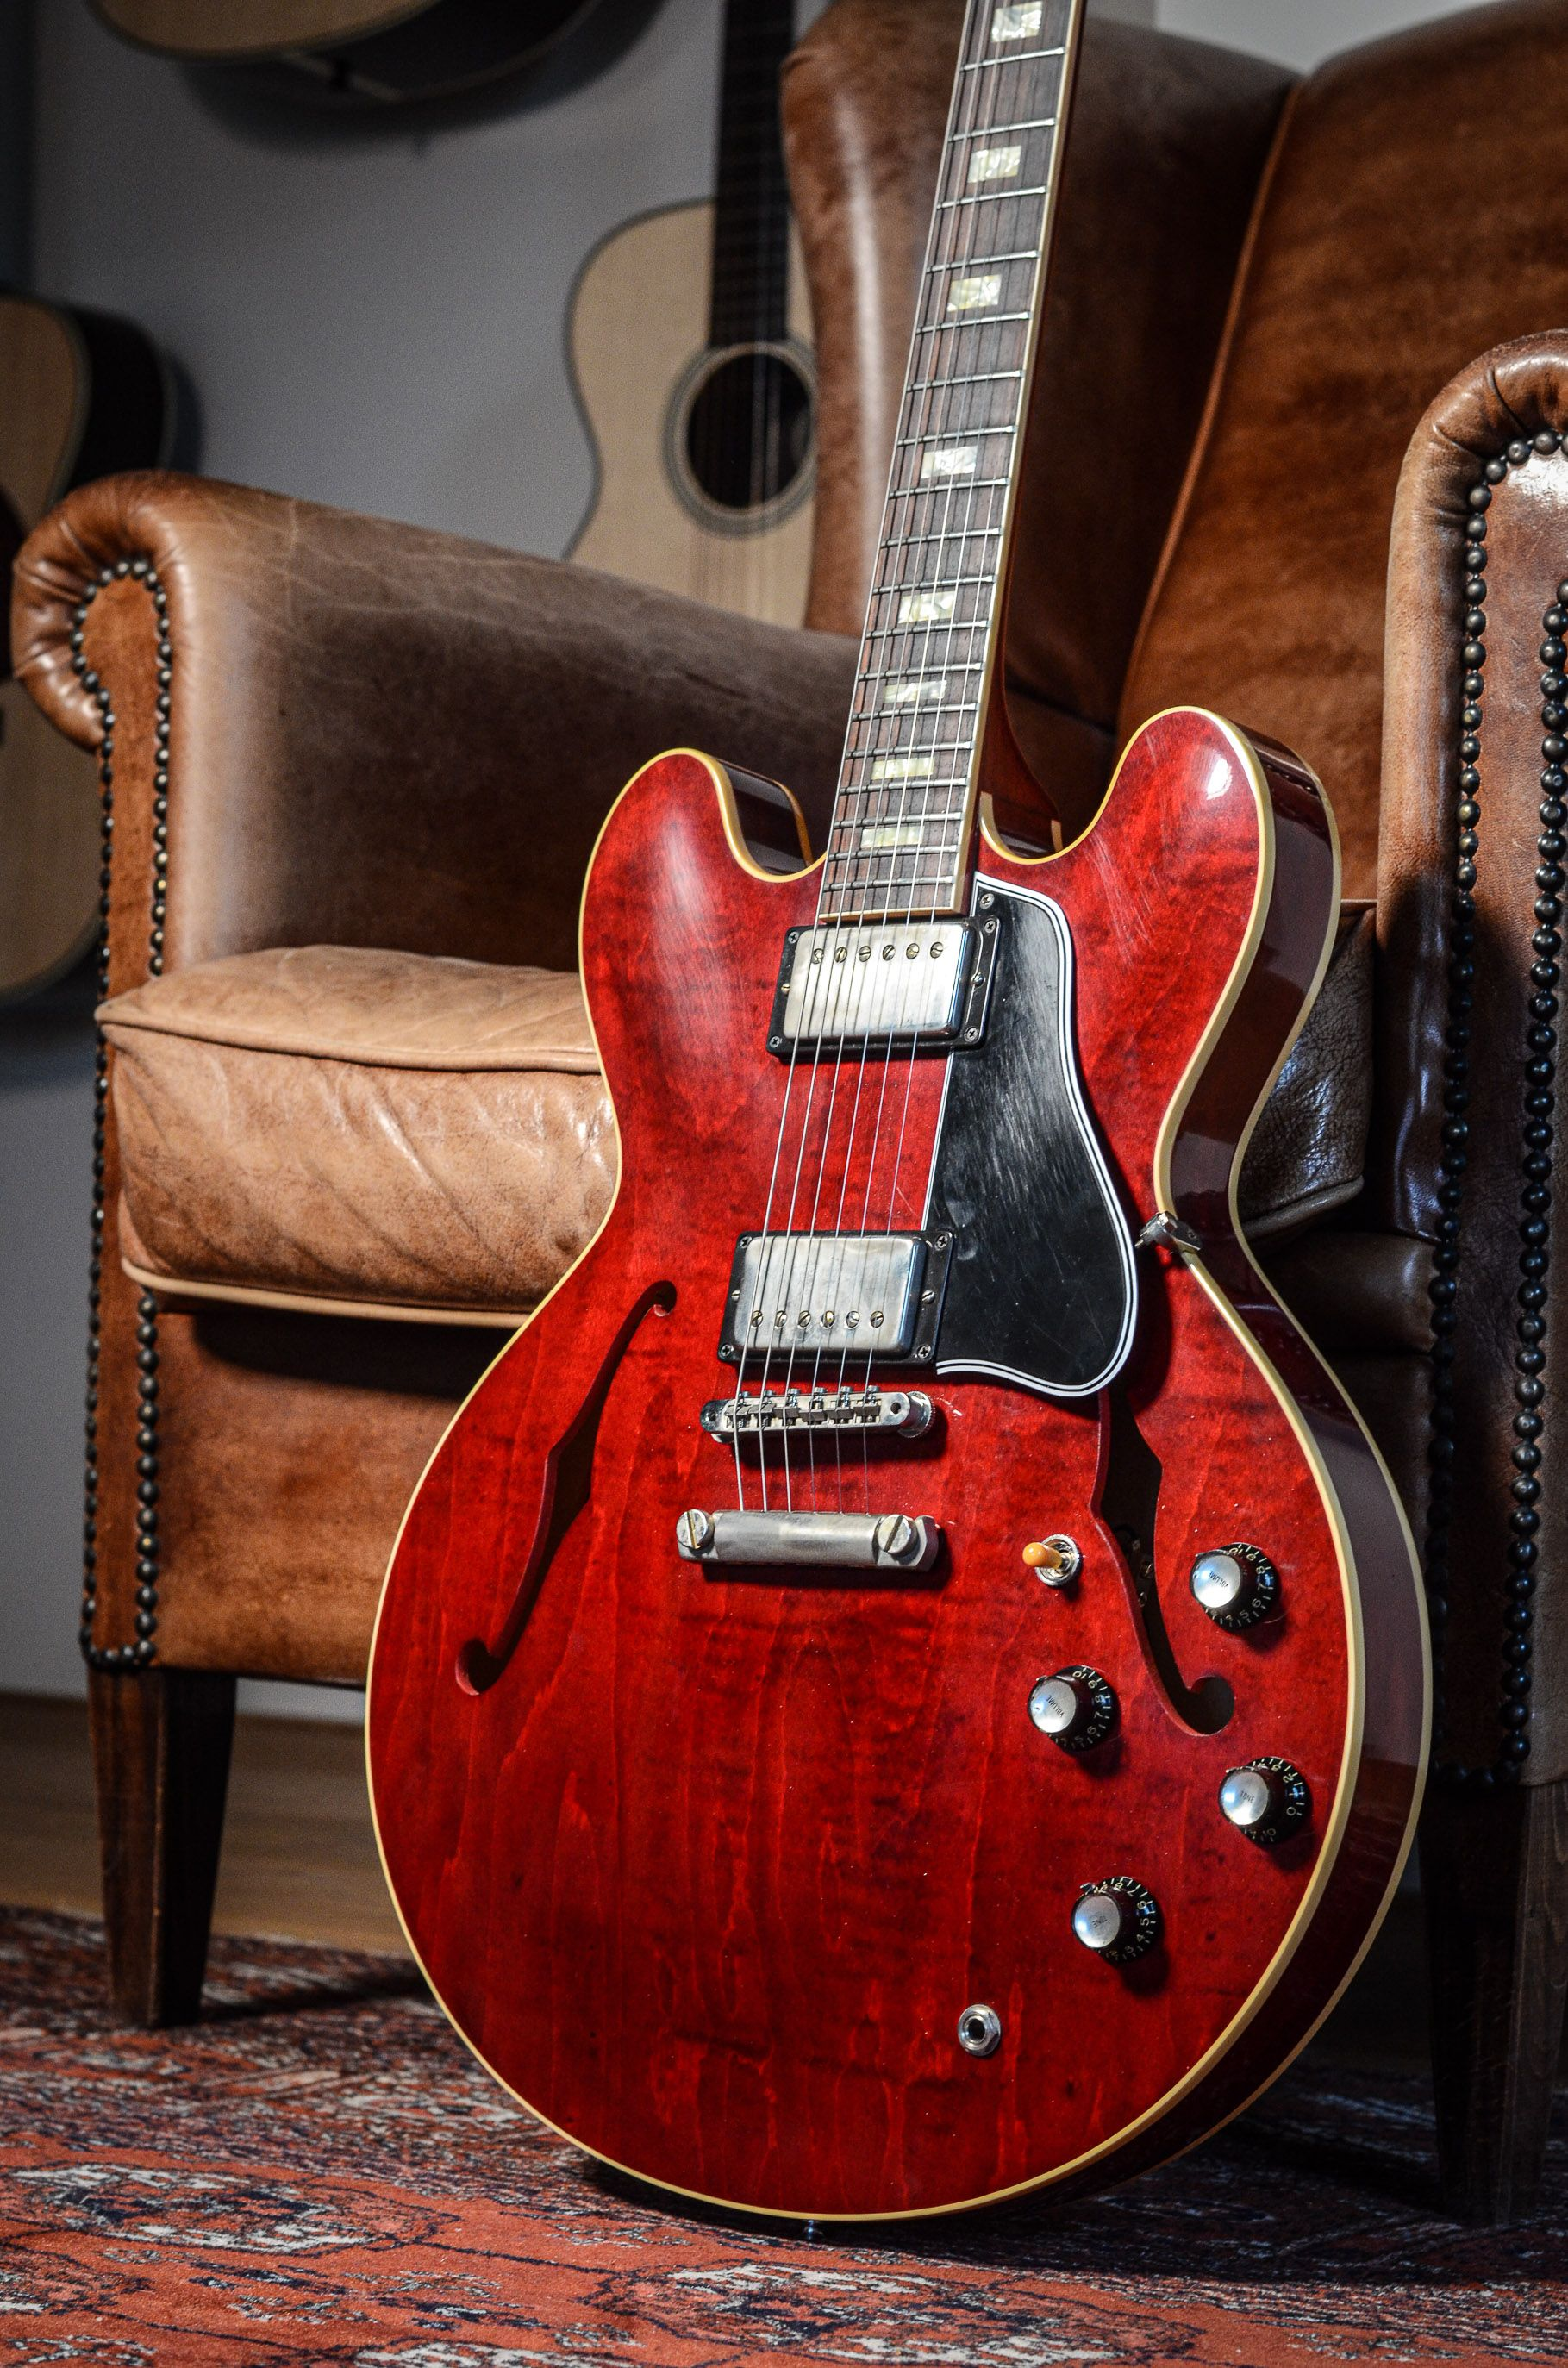 Pin By The Fellowship Of Acoustics On Gibson Es335 In 2020 Electric Guitar Guitar Vintage Electric Guitars